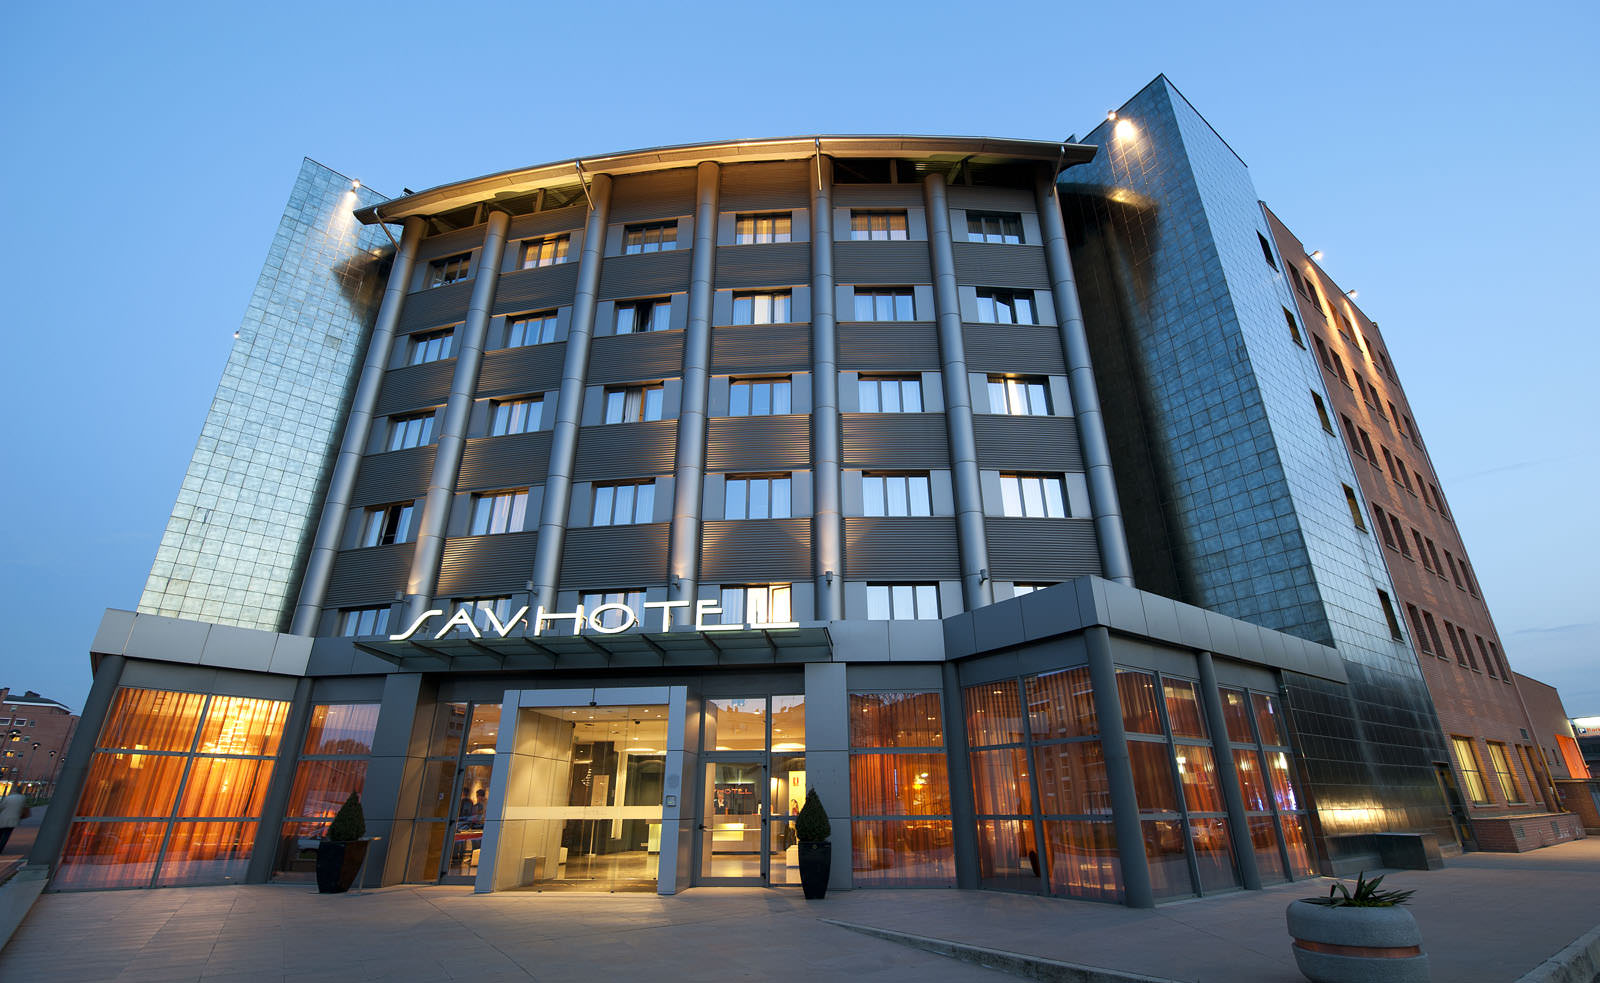 Photos of star hotel discover savhotel in bologna